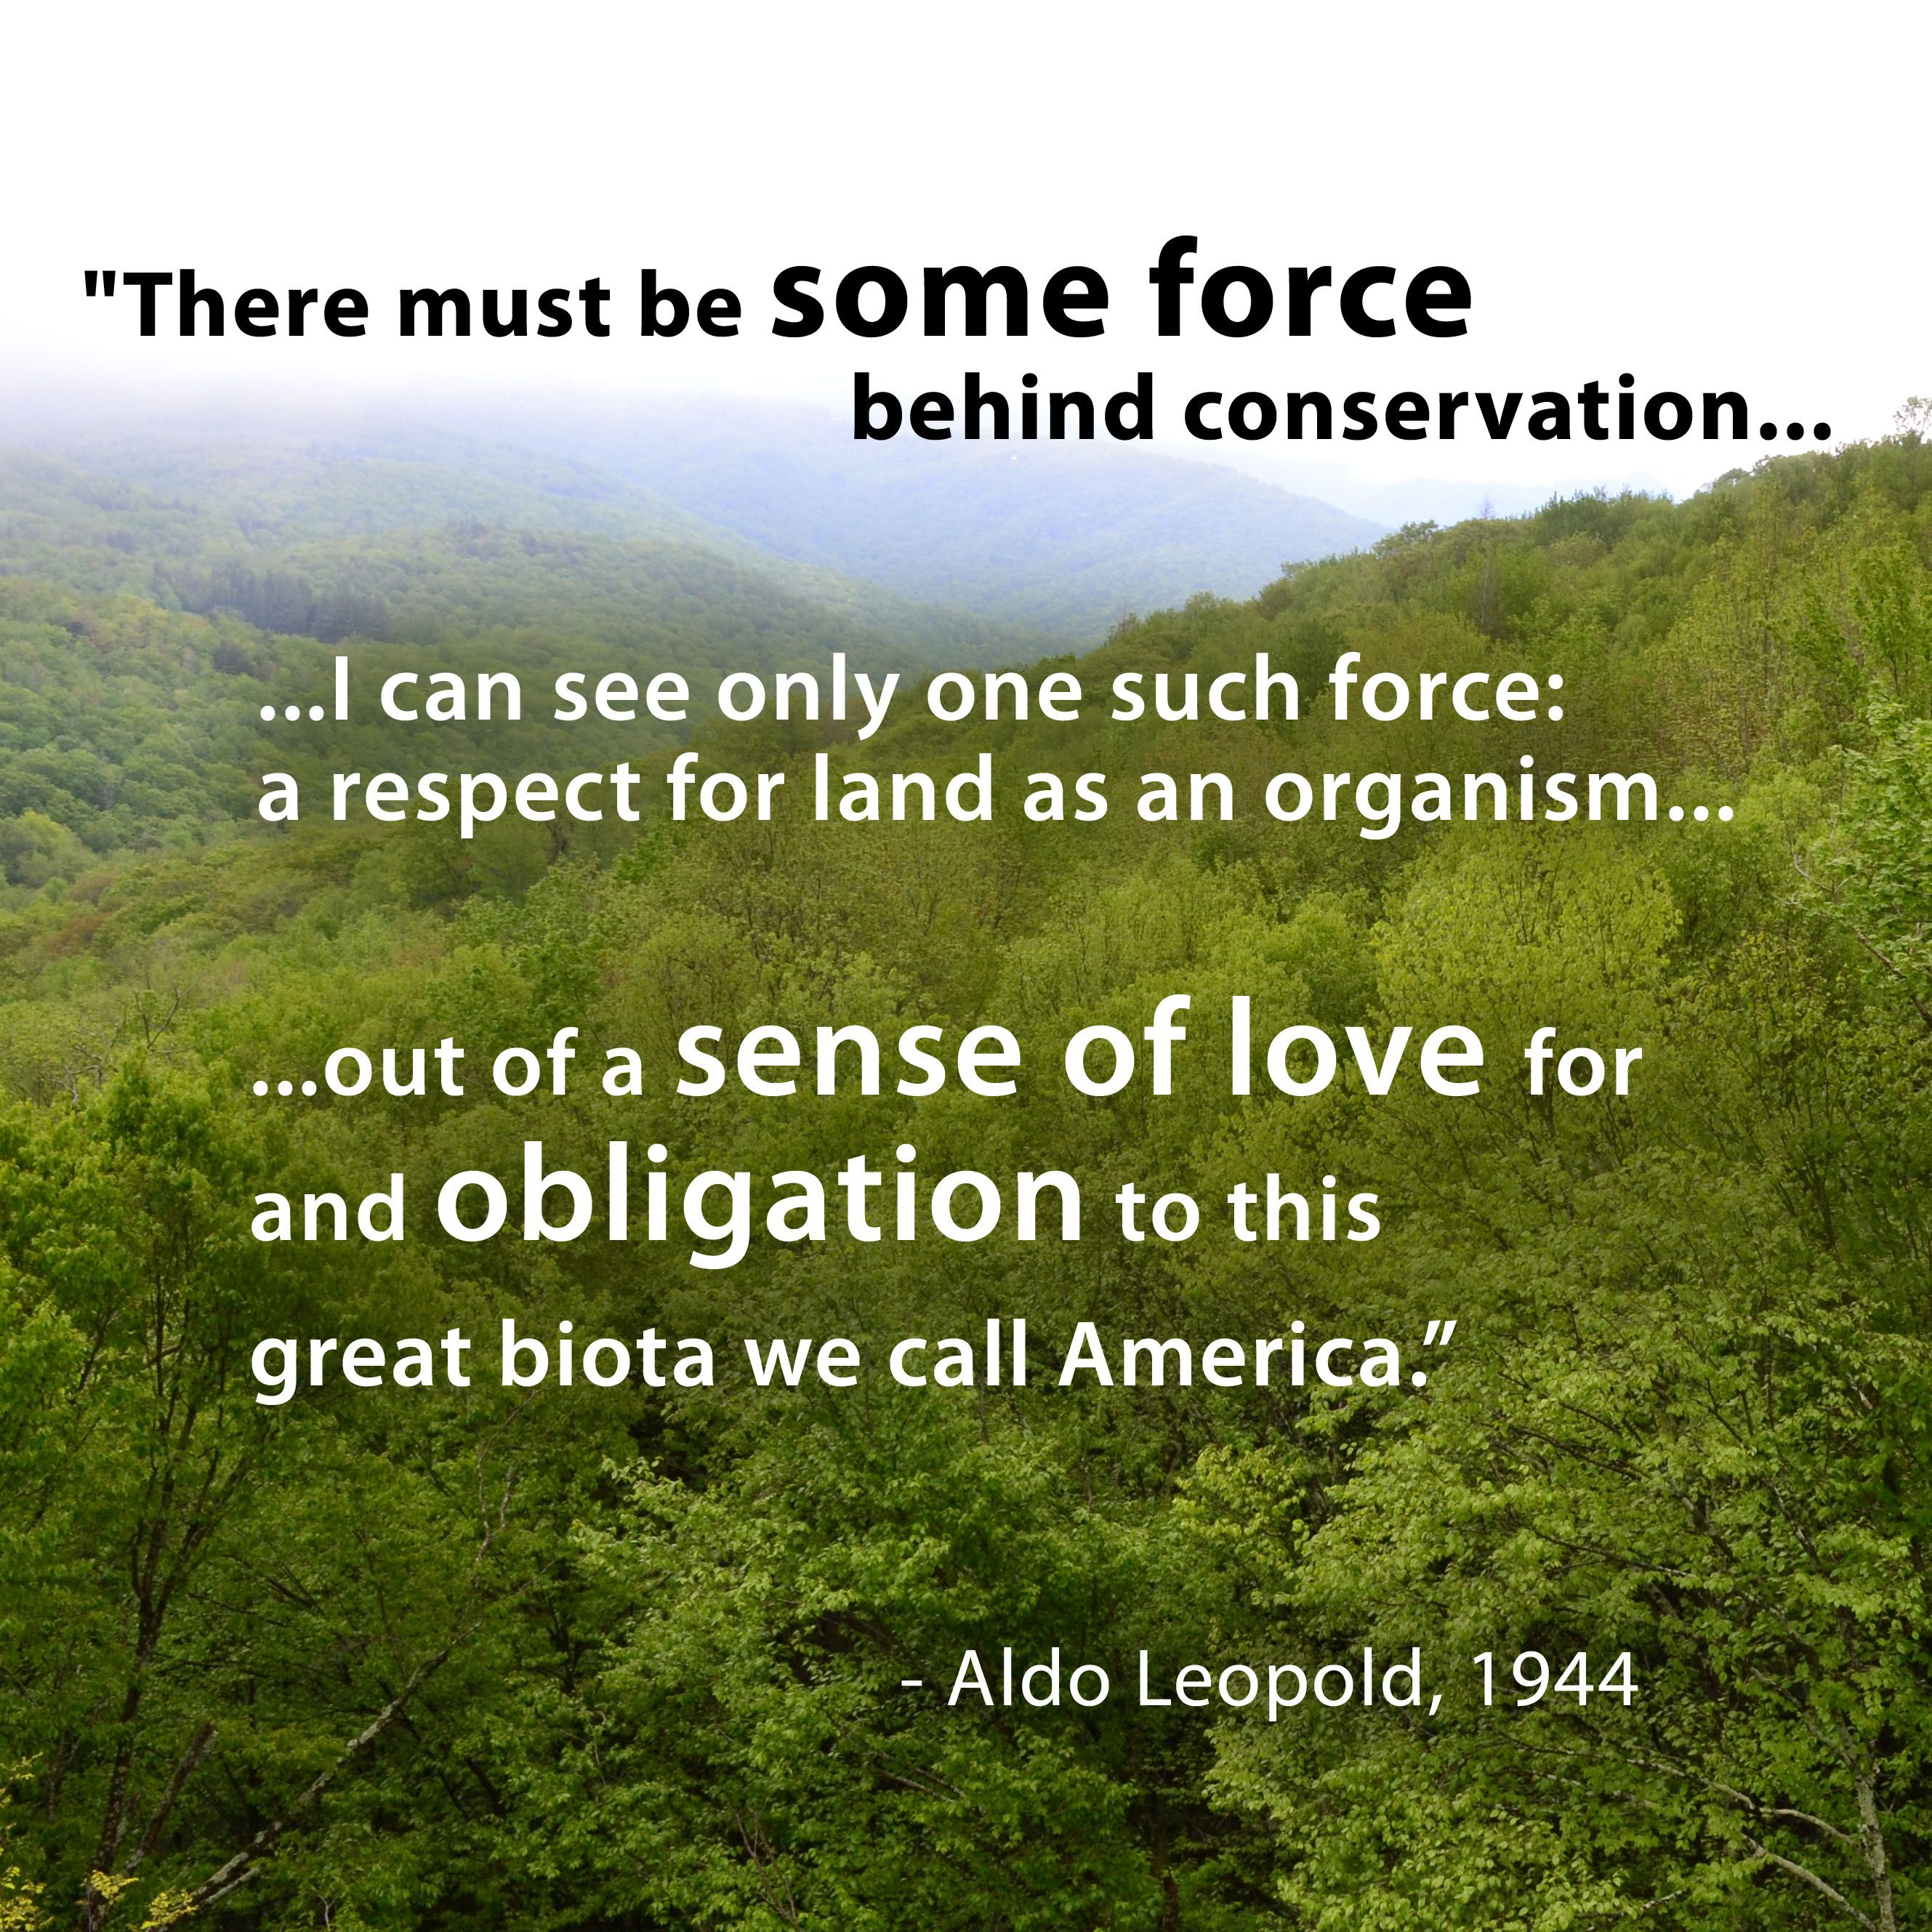 aldo review land ethic Aldo leopold in review of our natural resources and their conservation (1937) the wild goose chase (and this was fun to put on expense forms) was a bringing together of leaders in timber resource management, environmental community and wildlife agencies—all folks grounded in leopold's land ethic—to see if we.